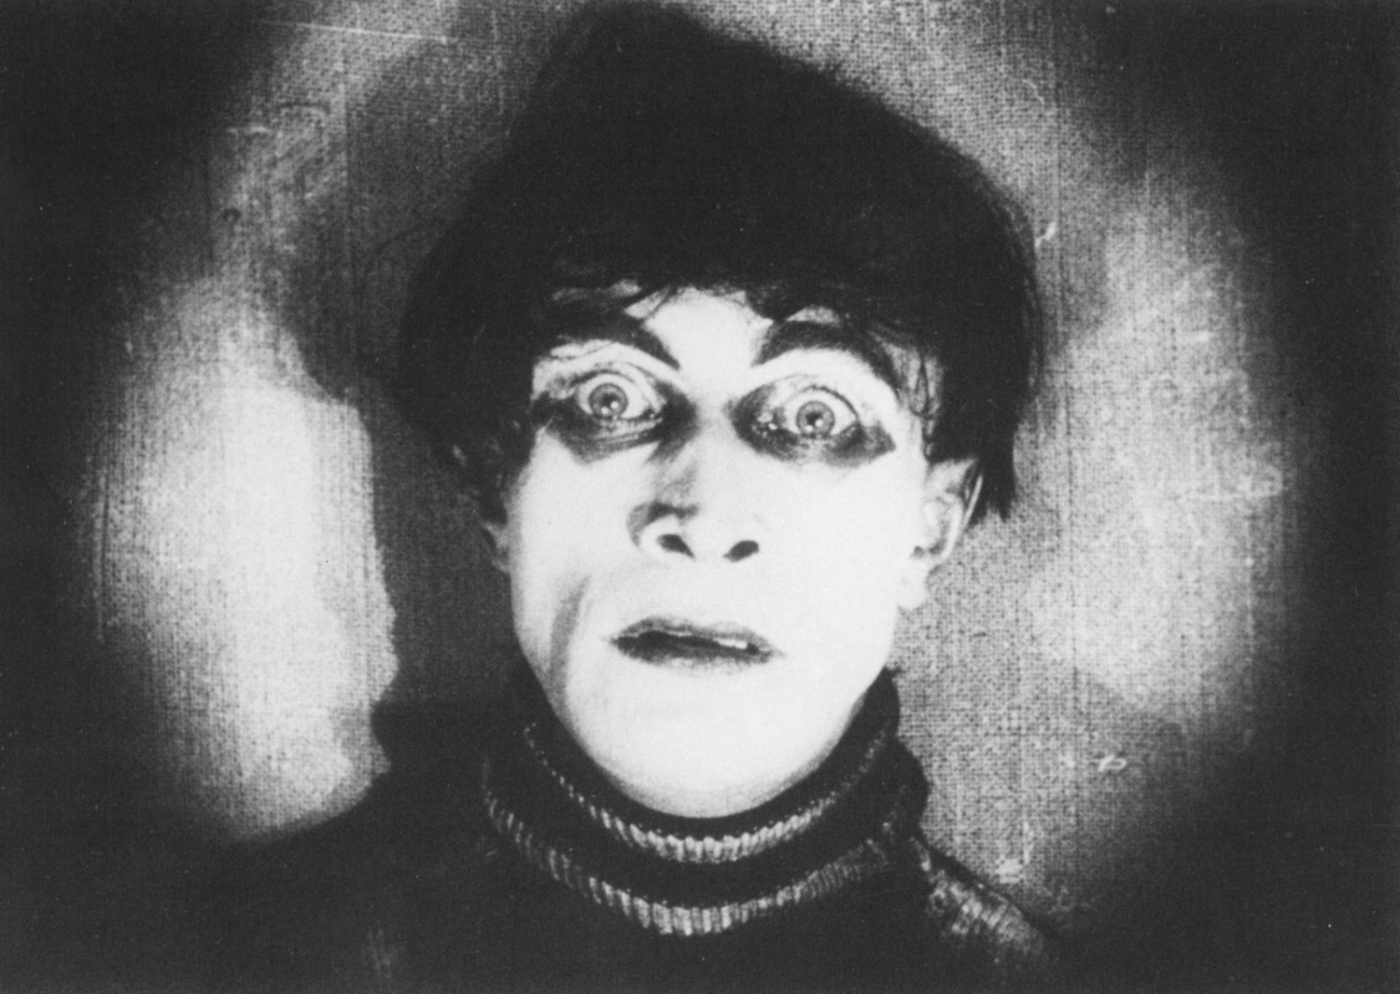 Conrad Veidt as Cesare